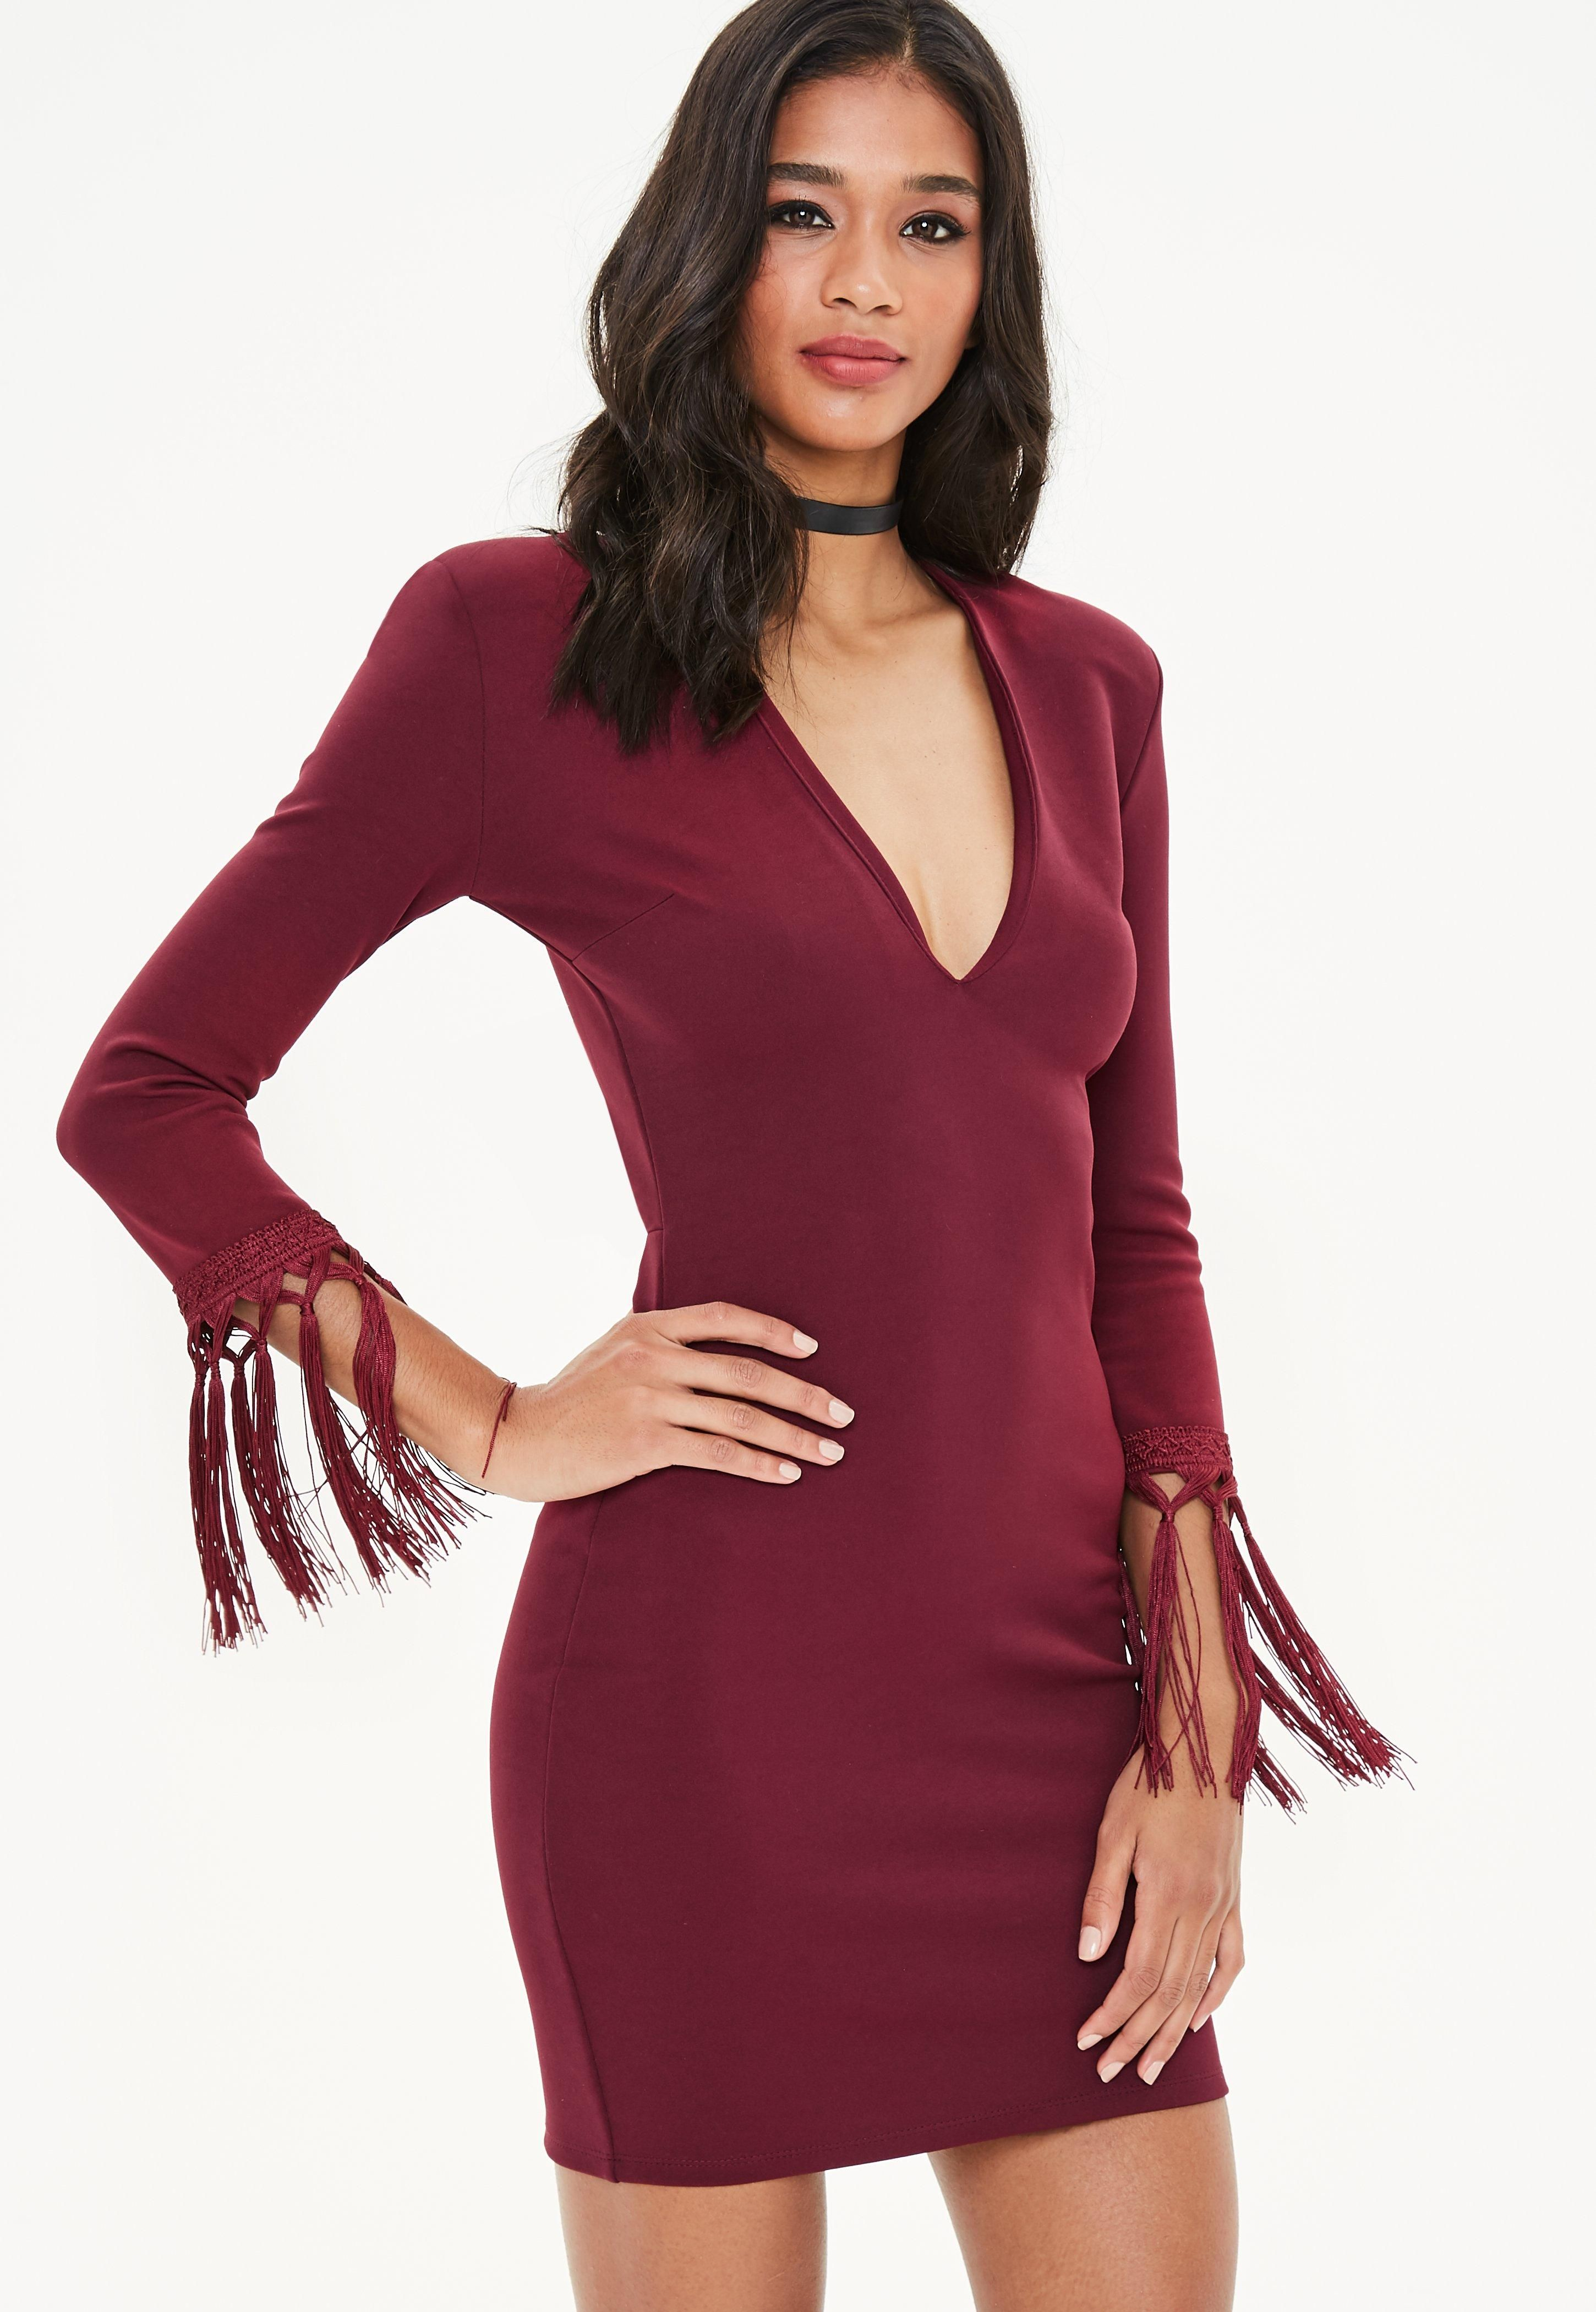 50th wedding anniversary dresses  Buy Cocktail Dresses Online Great Selection and Excellent Prices